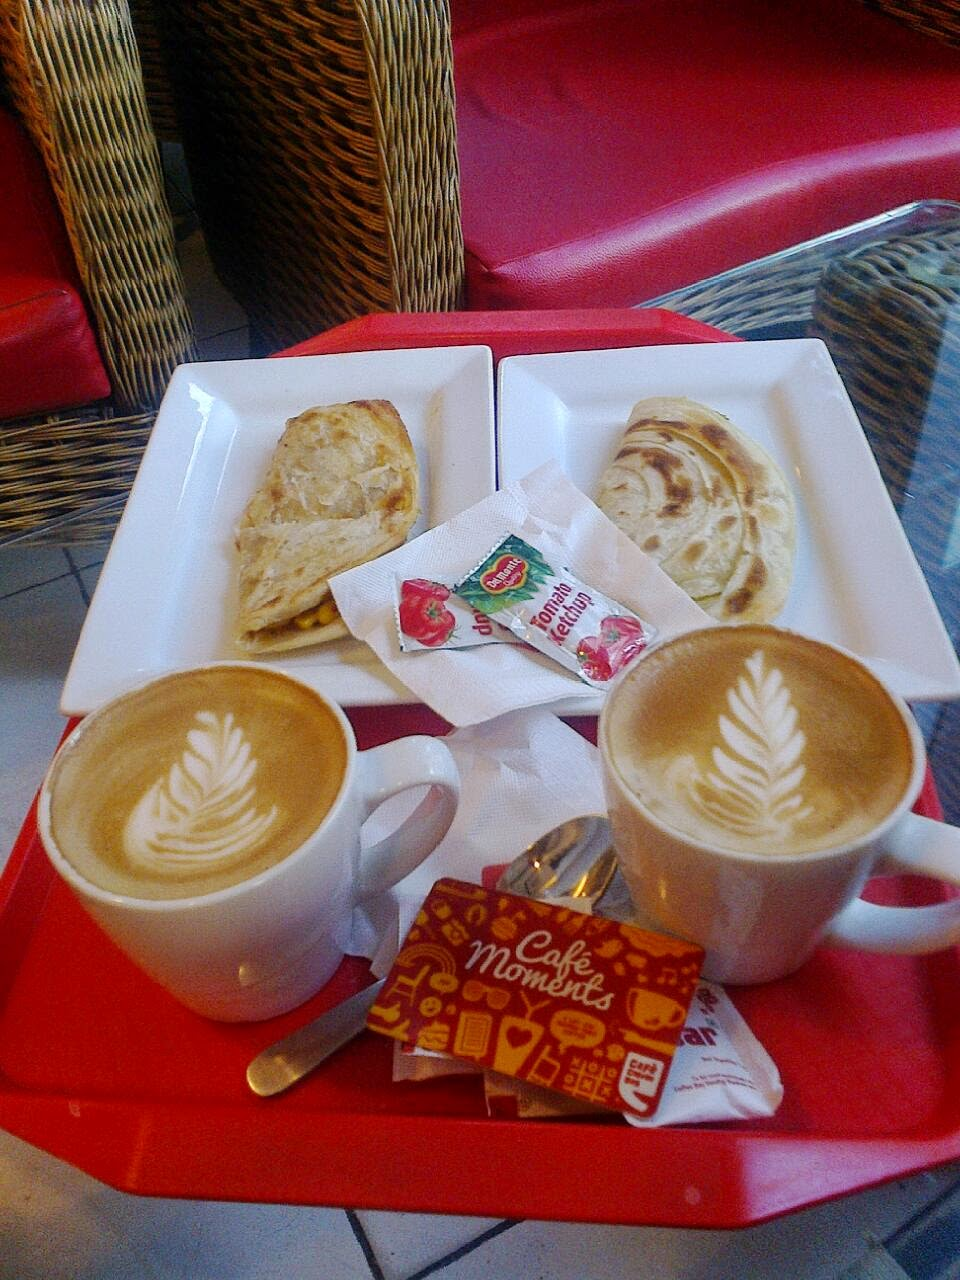 CCD. Cafe Moments. Coffee cafe day. Having coffee with you is the only good thing I do in my life